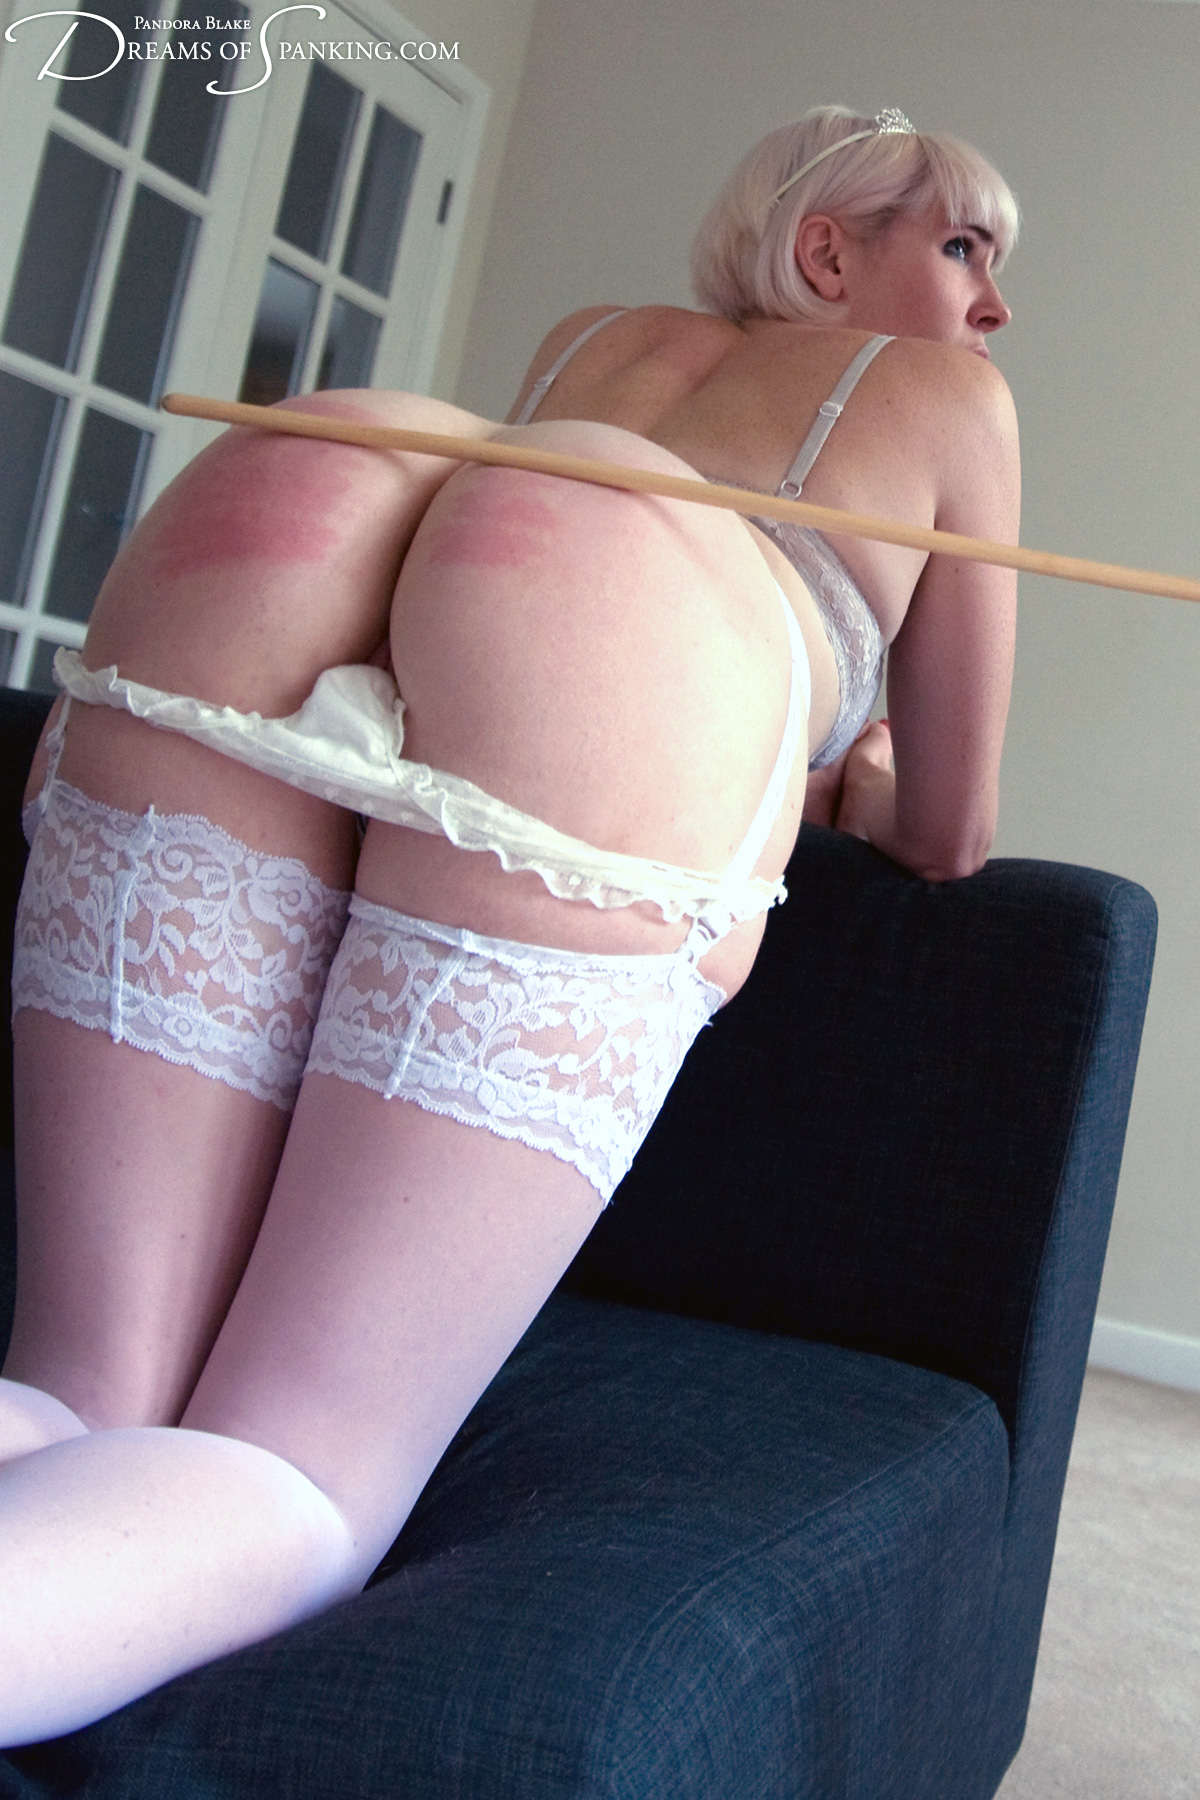 Out-of-control bride Molly Malone gets the cane at Dreams of Spanking